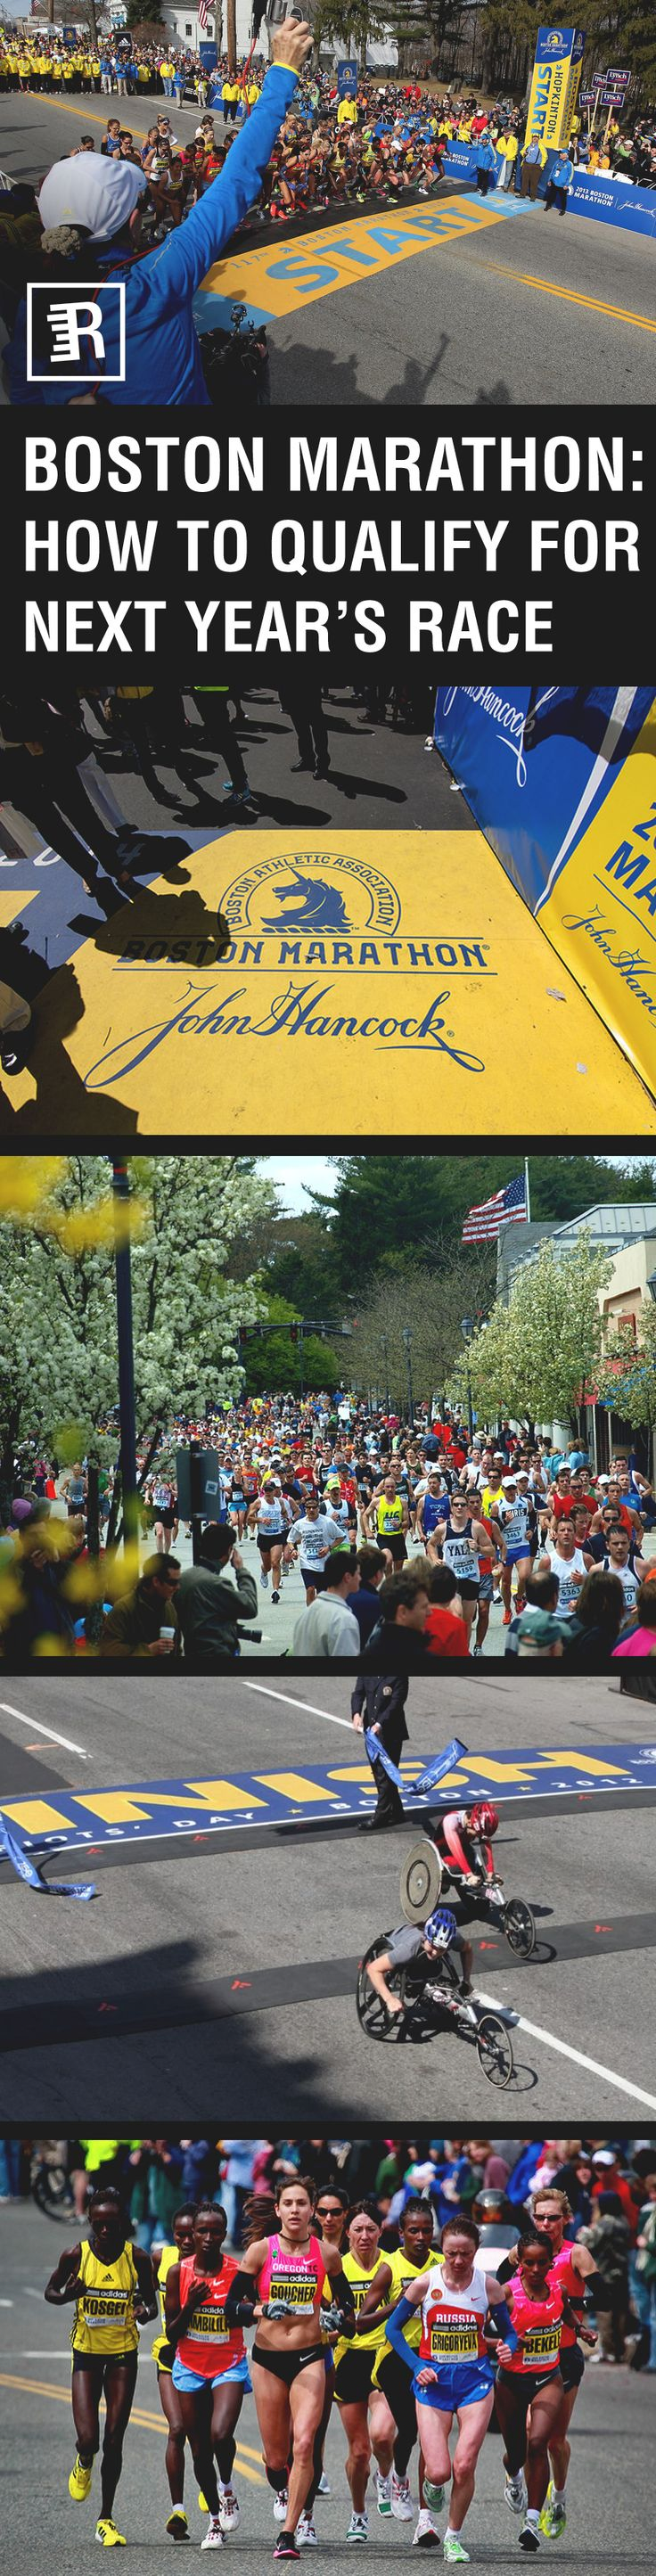 2017 is quickly approaching, which means it is time to start your planning for the next year. Qualifying for the Boston Marathon is no easy task, but it is possible with dedication and perseverance.